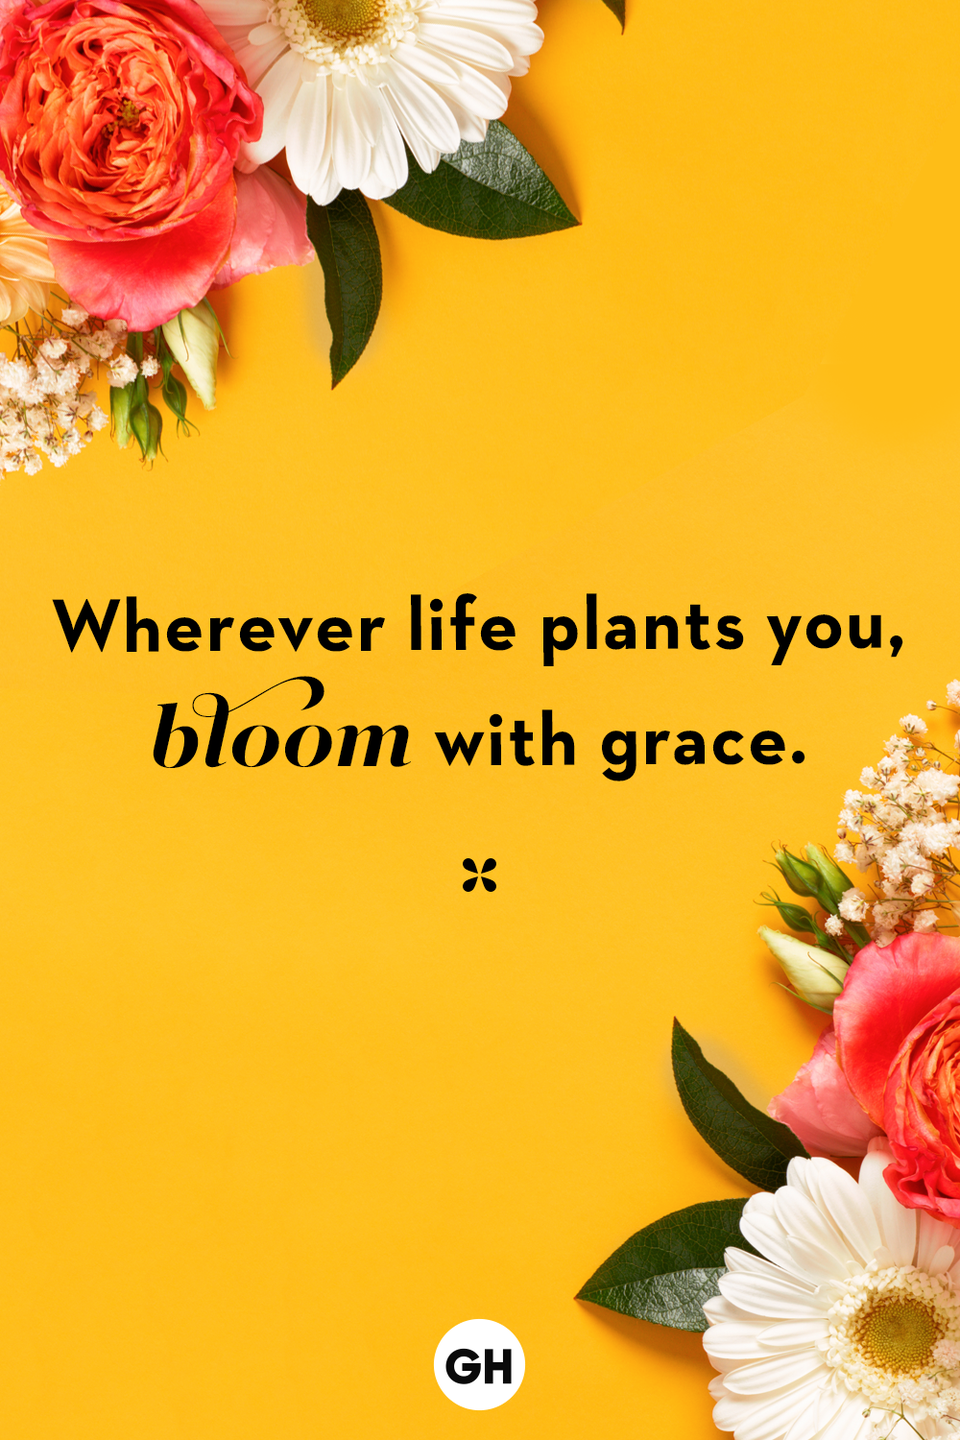 <p>Wherever life plants you, bloom with grace.</p>